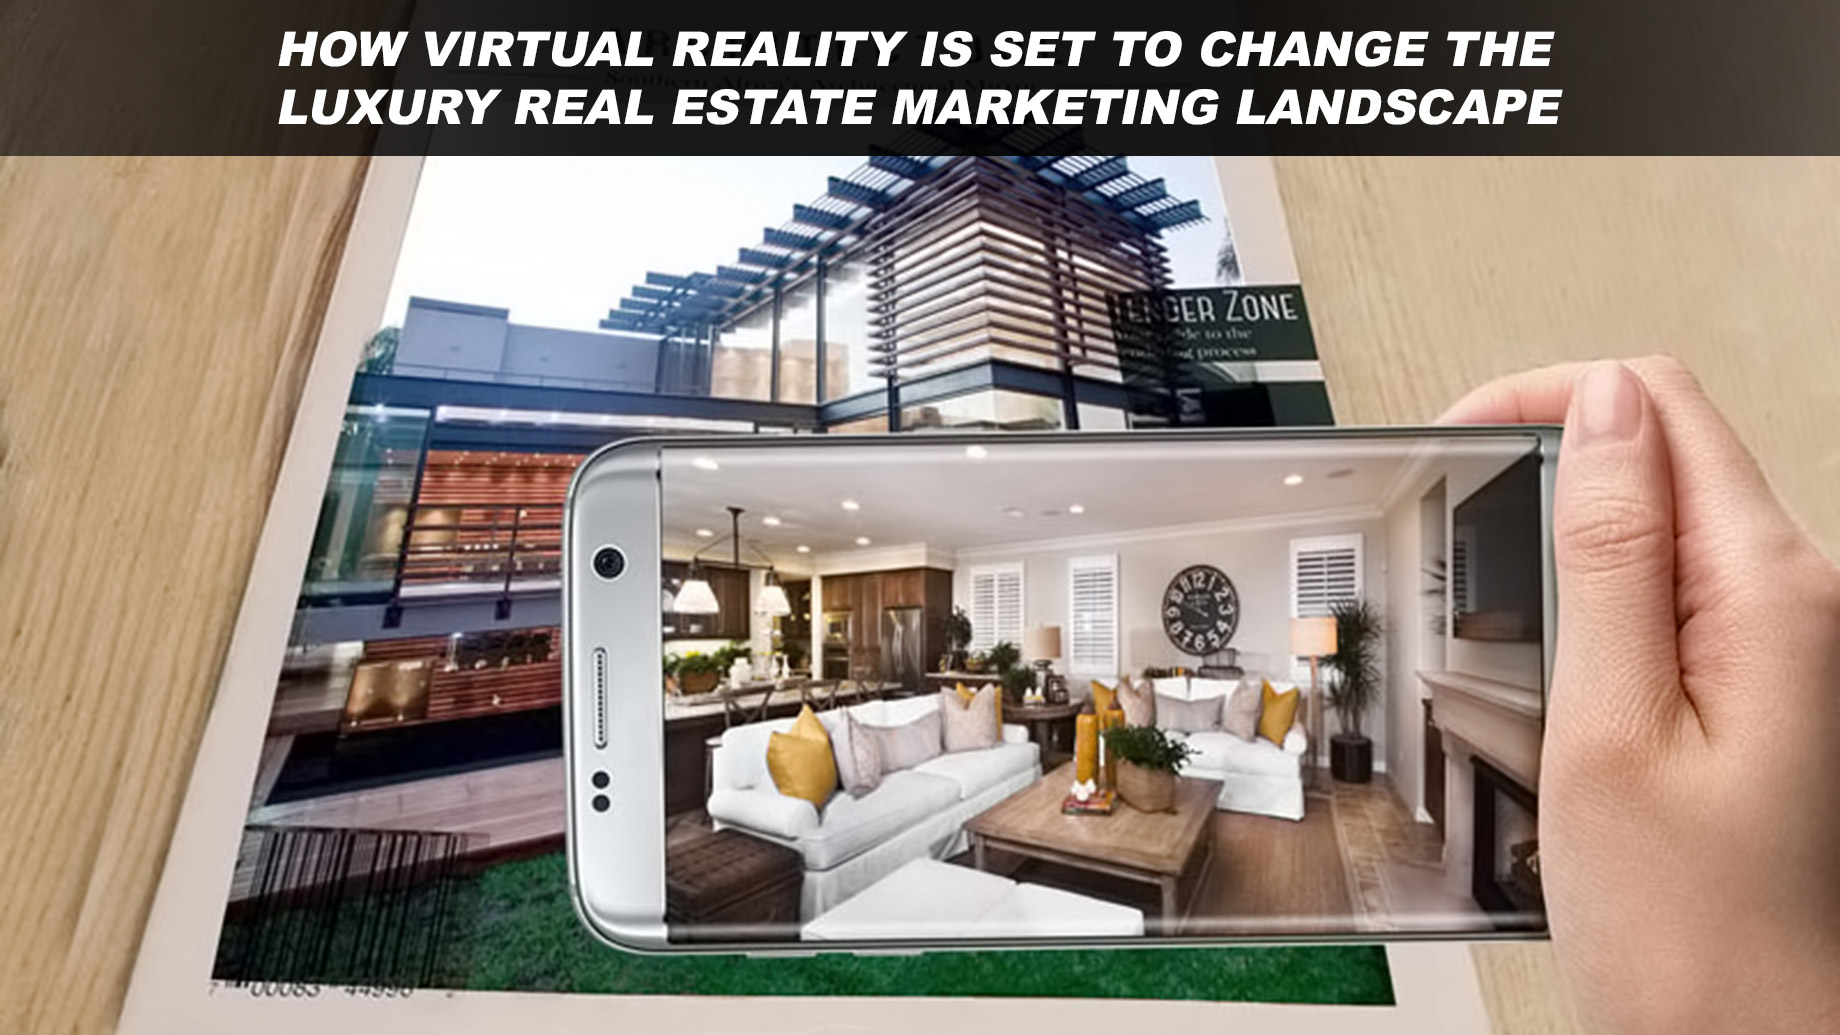 How Virtual Reality Is Set to Change the Luxury Real Estate Marketing Landscape